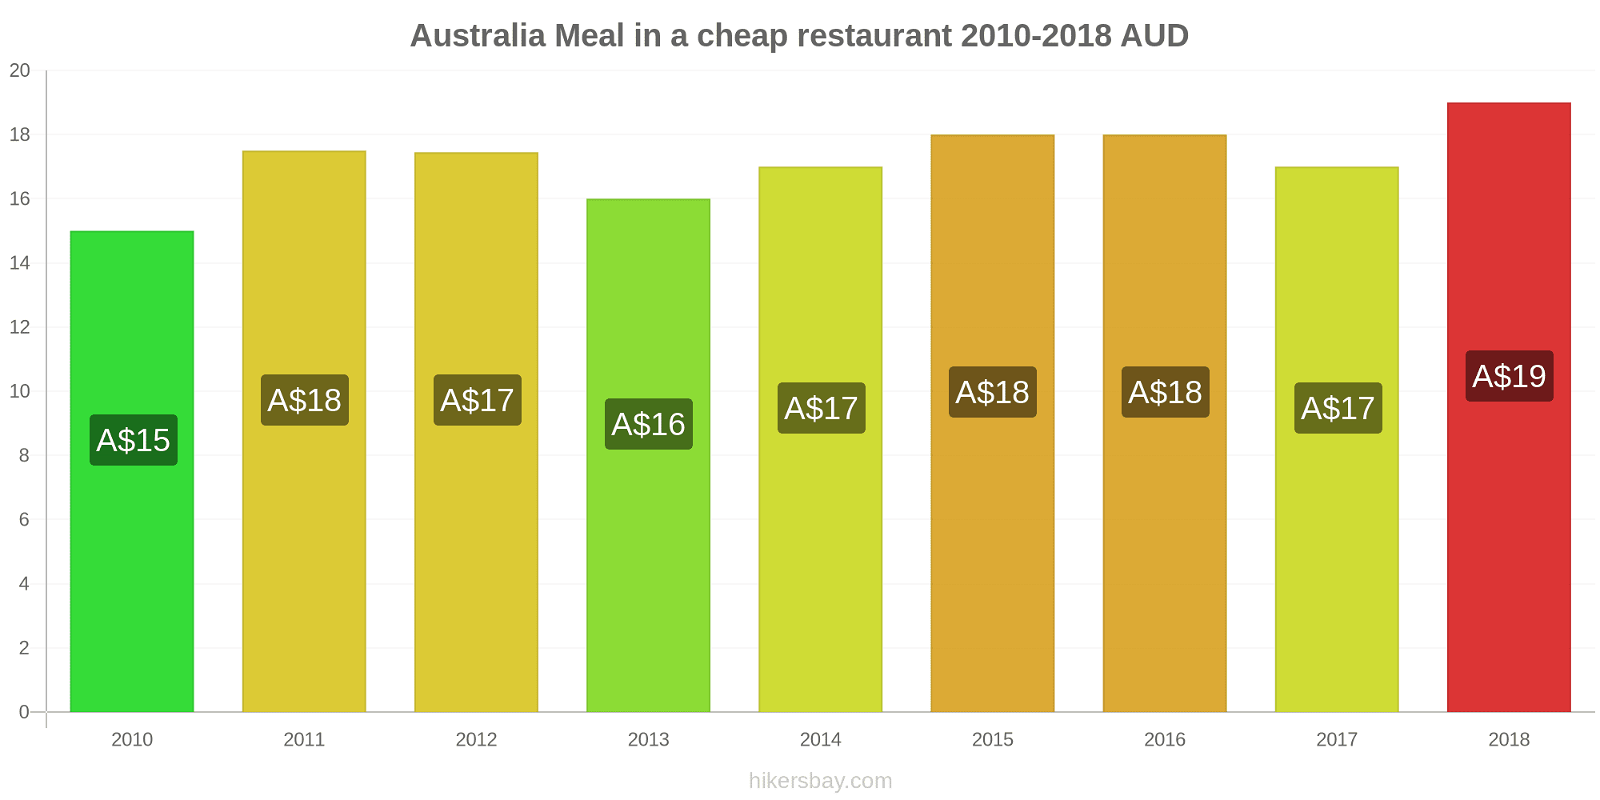 Australia price changes Meal in a cheap restaurant hikersbay.com